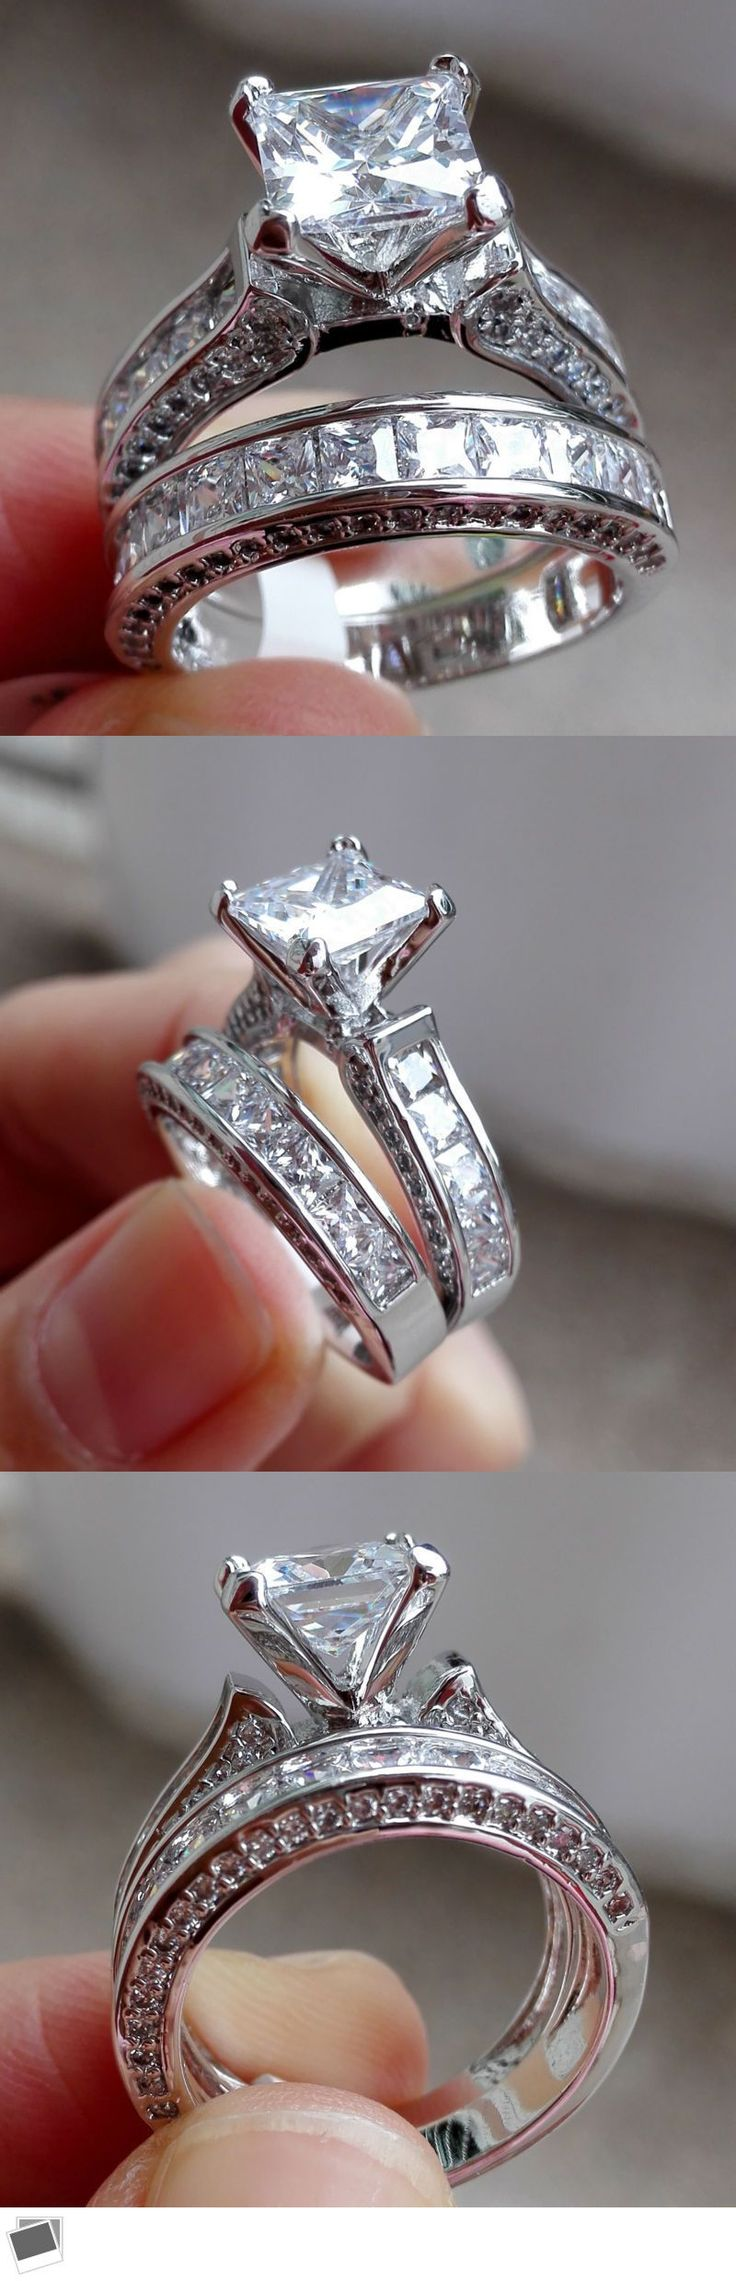 Rings 67681: 3 Ct Princess Cut Cz Solid 925 Sterling Silver Wedding Engagement  Ring 2